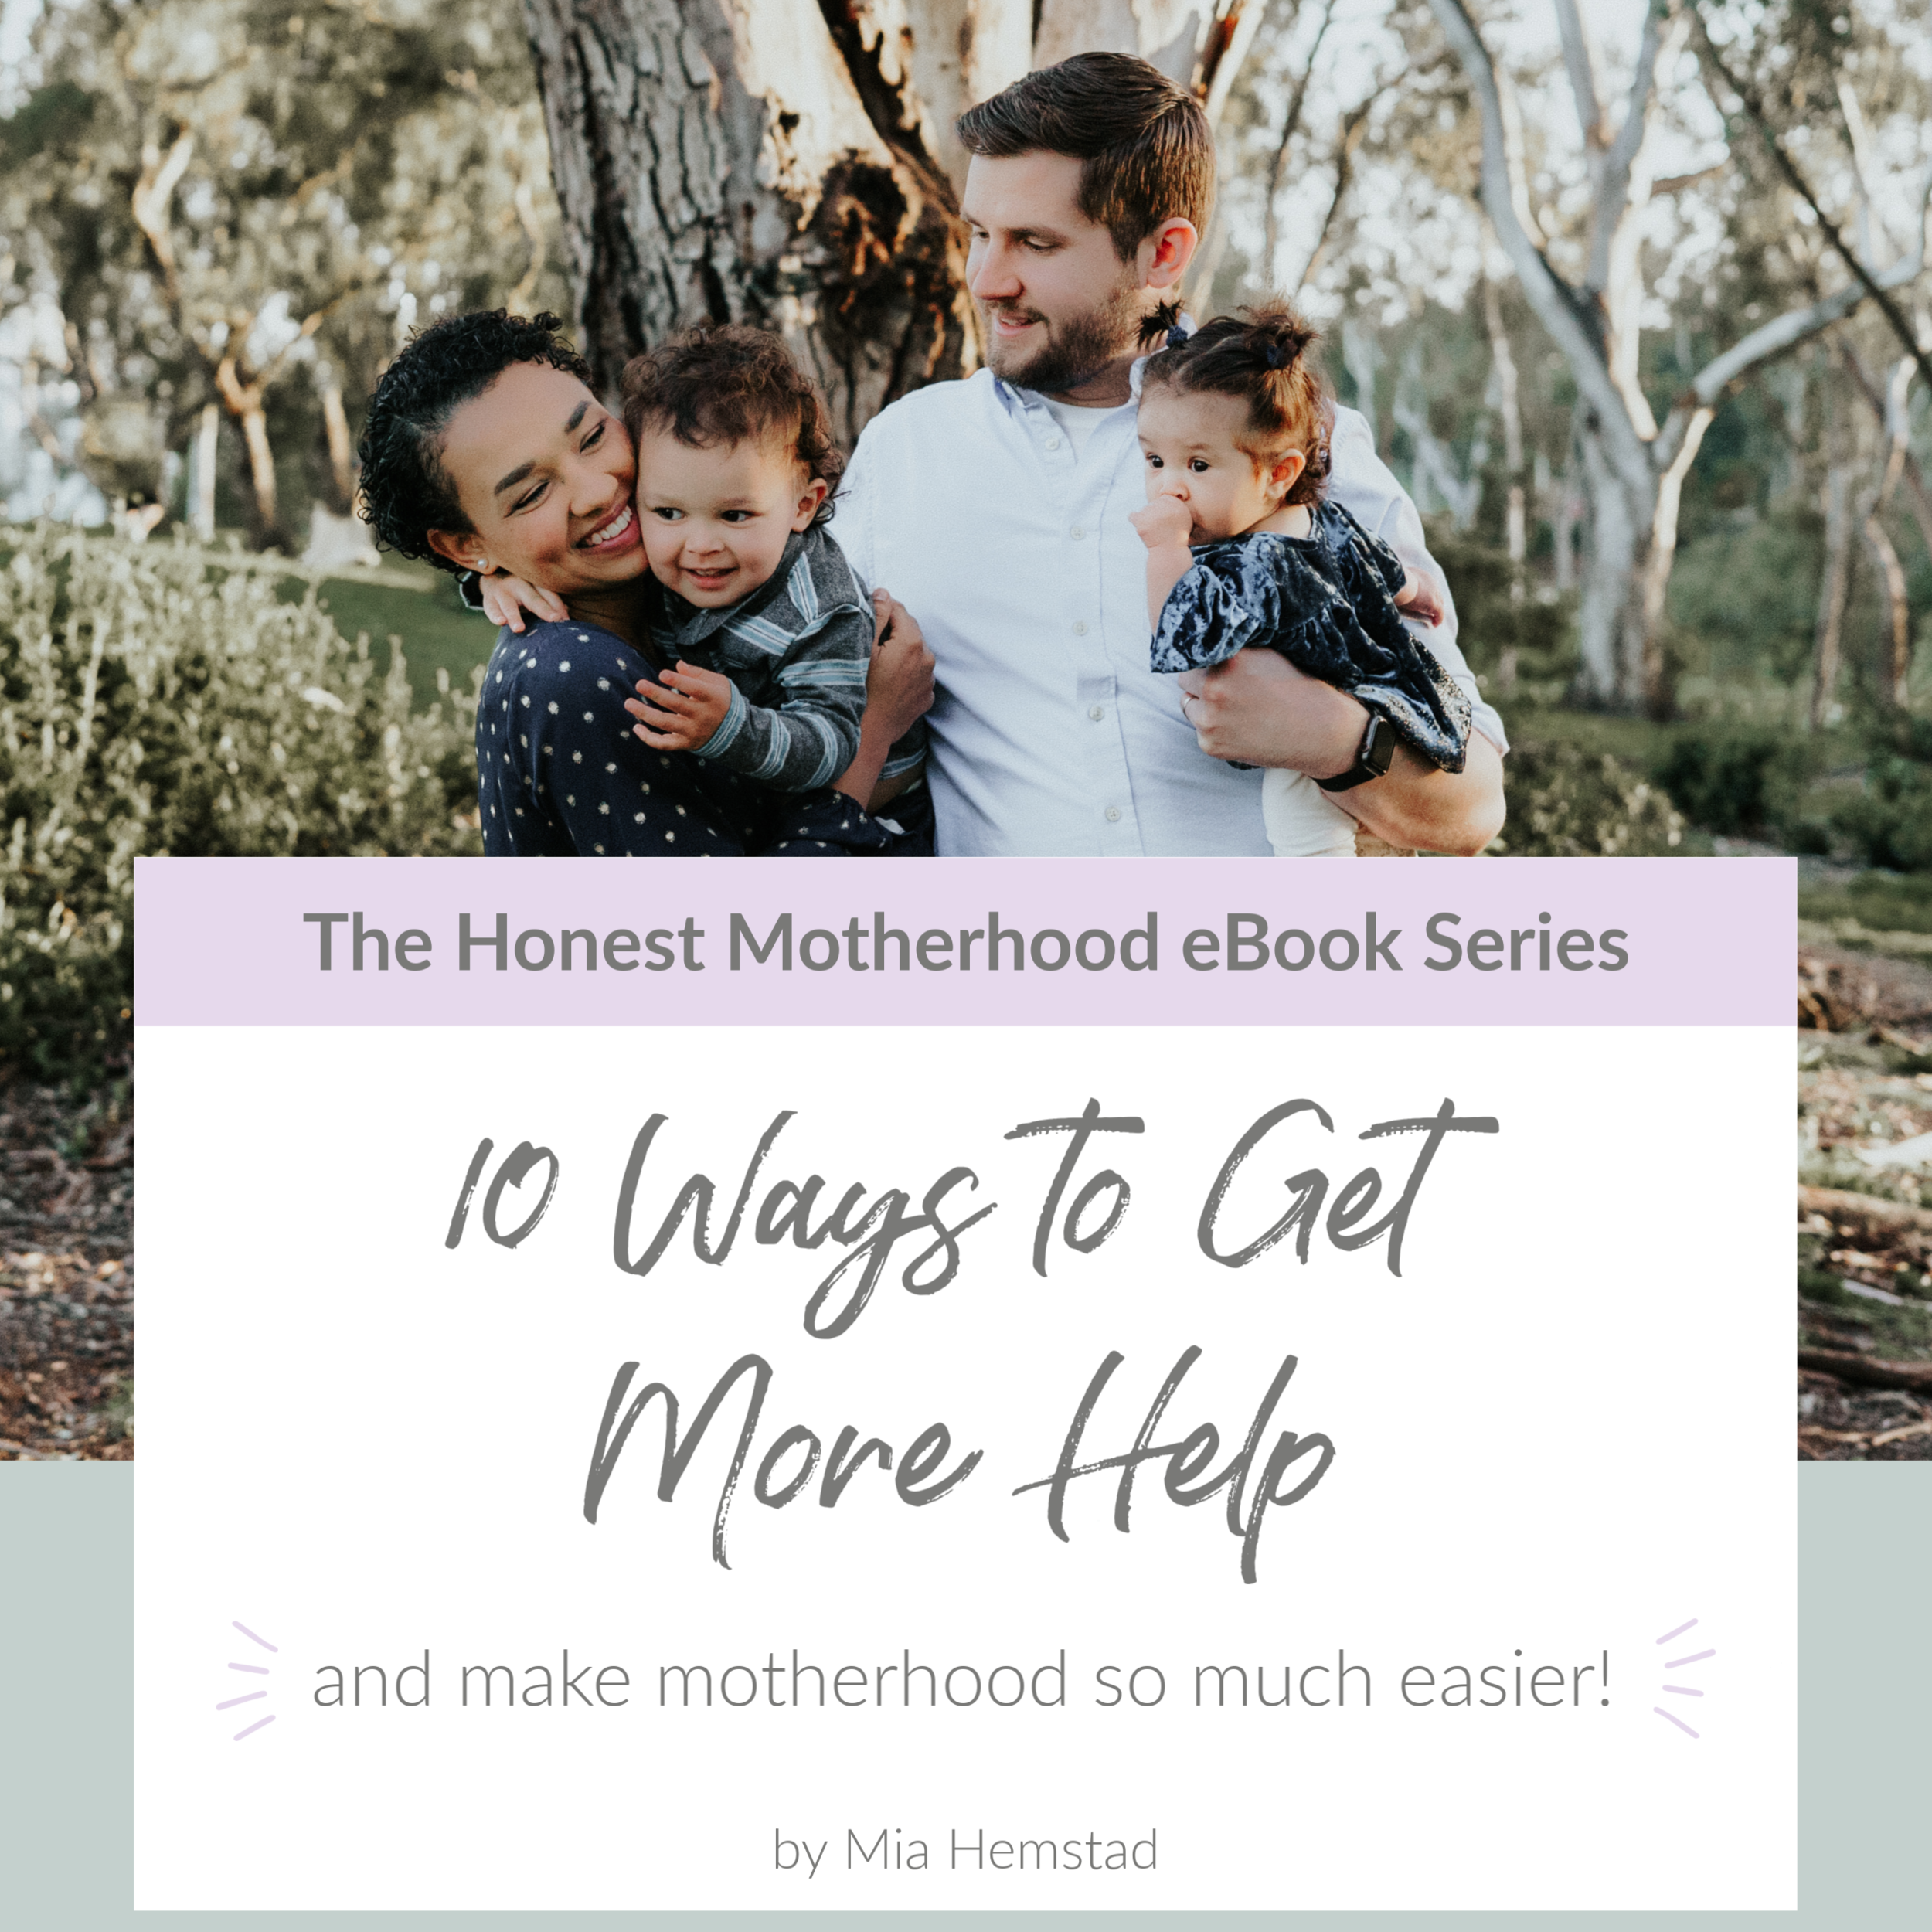 I know what it's like to feel completely burnt out. You too? - After 3 years as a mom, and overcoming postpartum depression twice, I have learned how to take amazing care of myself, and I've seen how much my whole family has benefitted! Now, I want to share what I've learned with you!